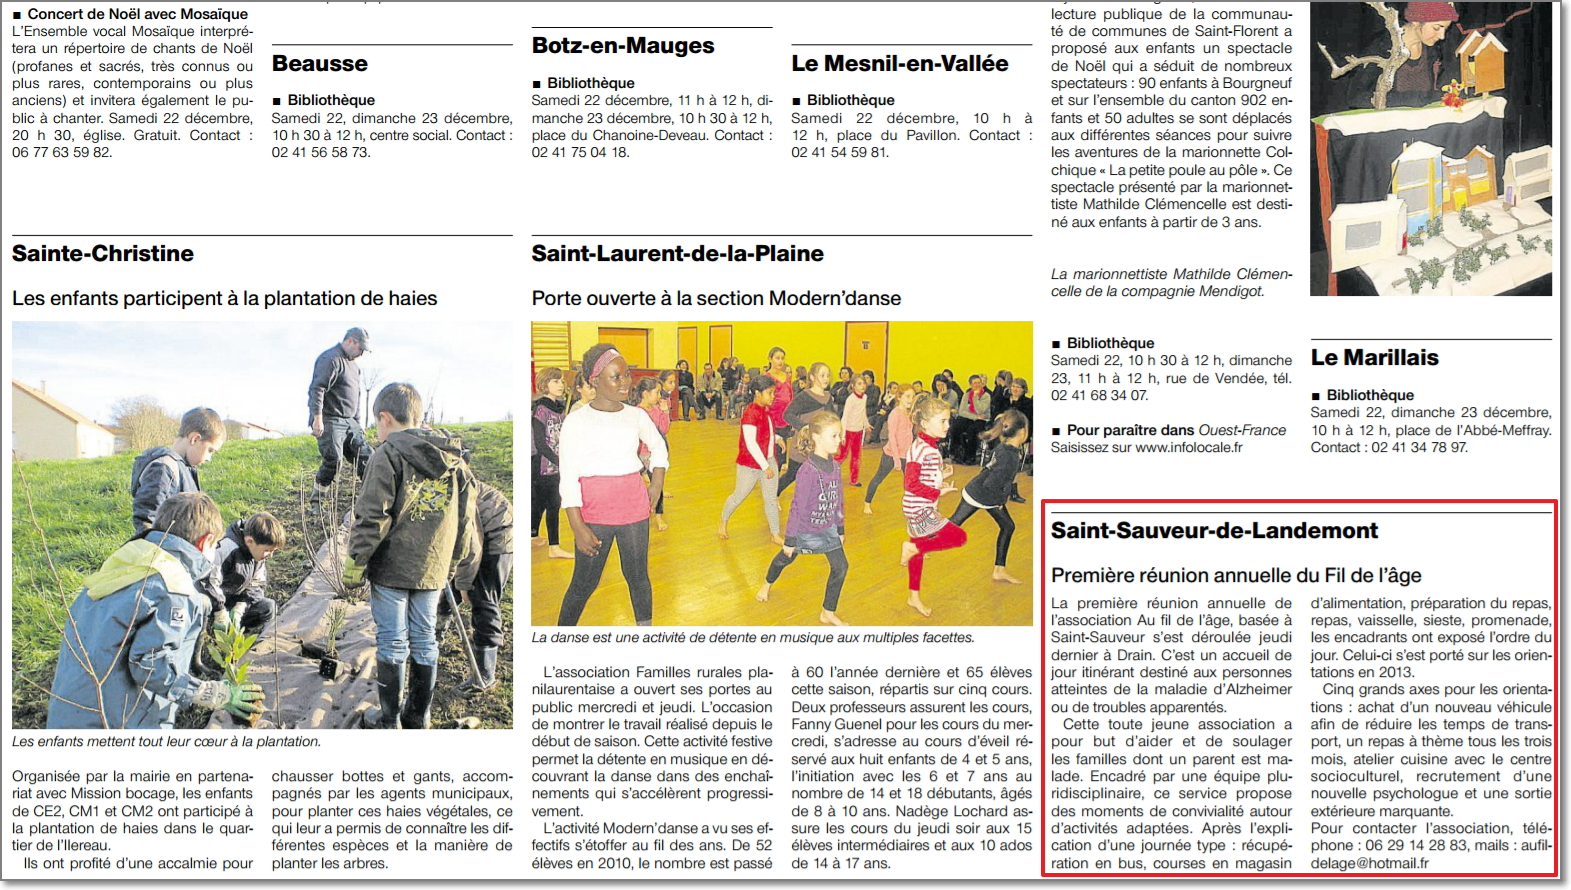 22/12/2012 - Ouest France